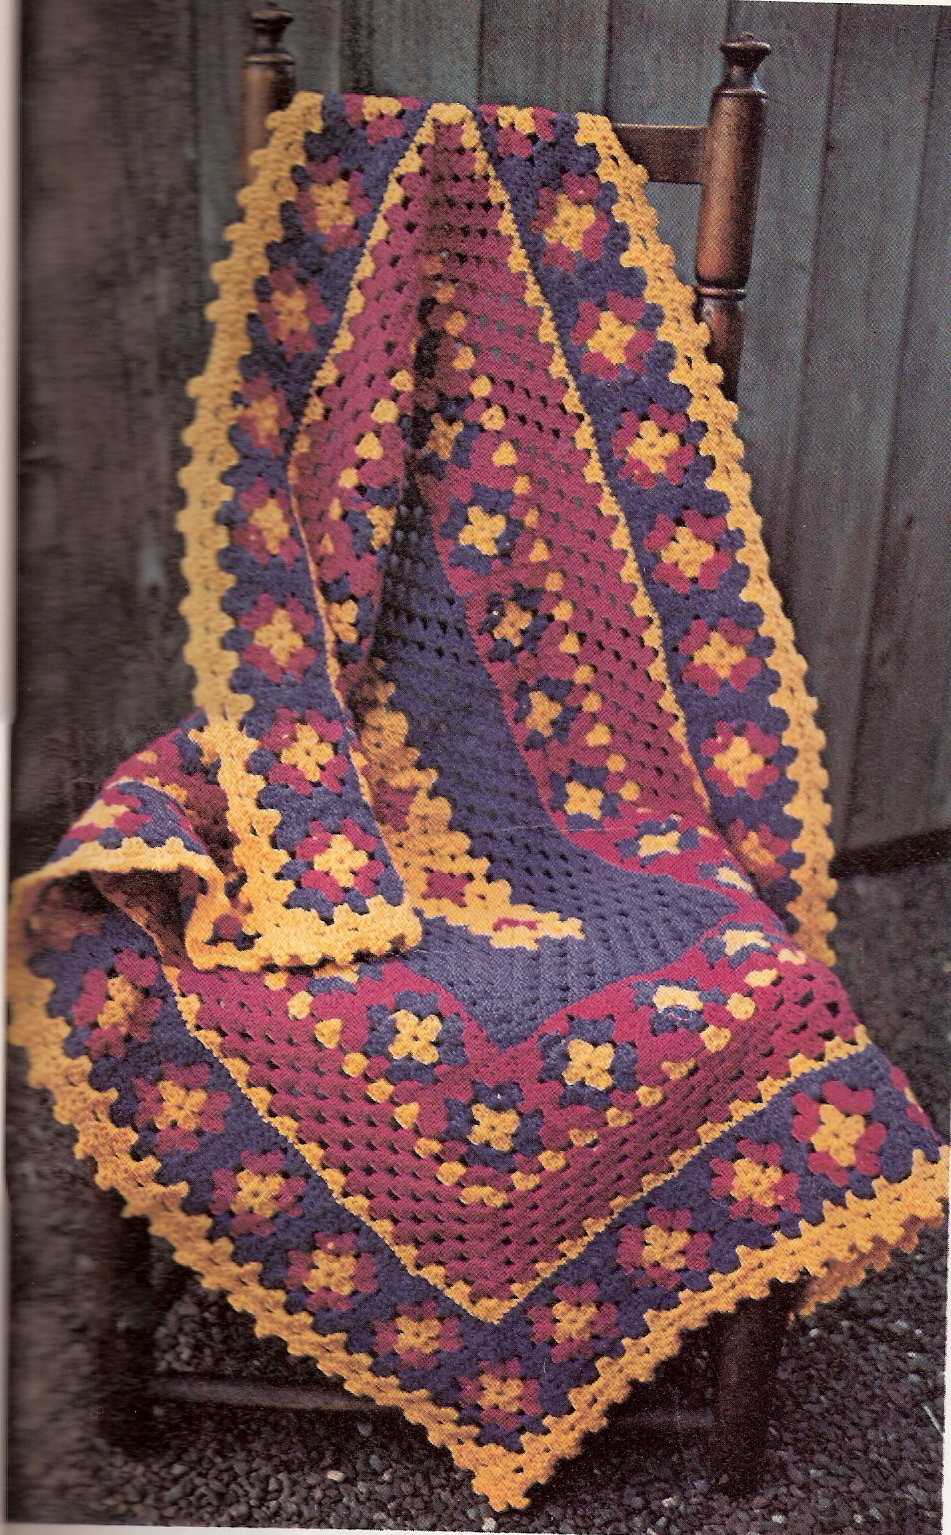 Crochet Patterns For Afghans : patternscentral